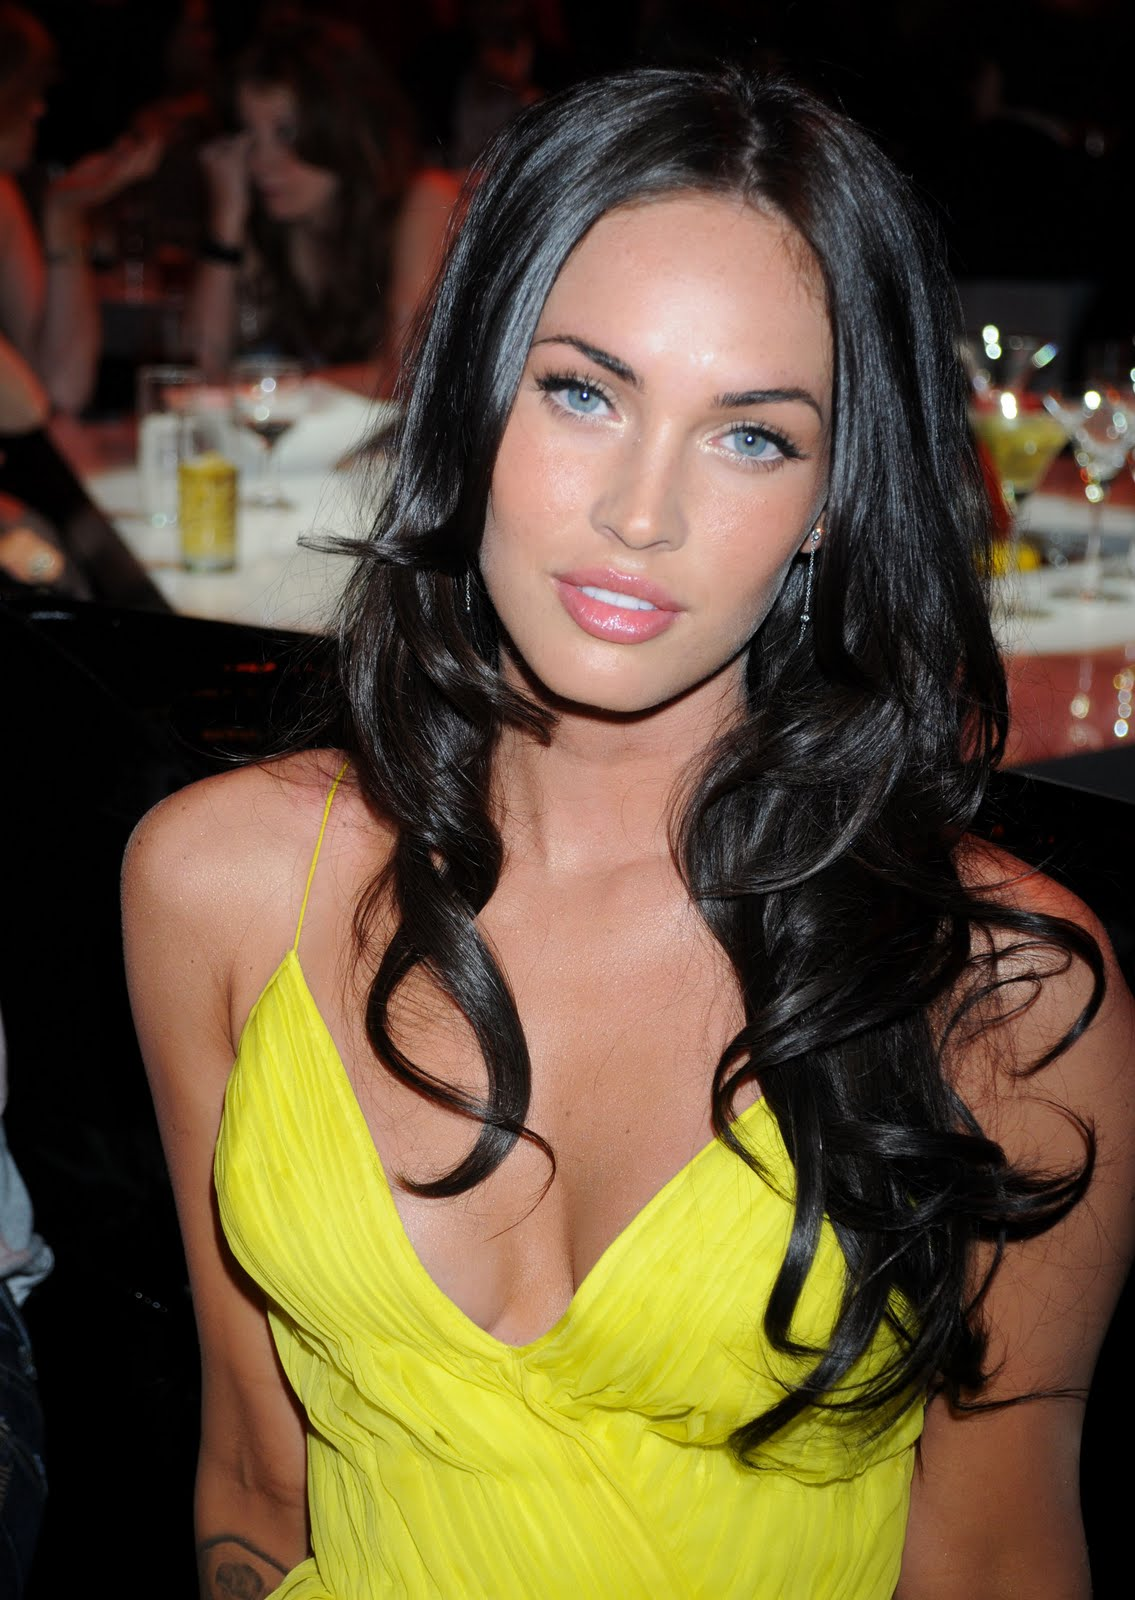 http://2.bp.blogspot.com/_zhIHU9NMrzk/TH2whoqQJJI/AAAAAAAAA1M/nsVCFMDdbno/s1600/megan-fox_net_spike_tv_guys_choice_awards_1_(4).jpg